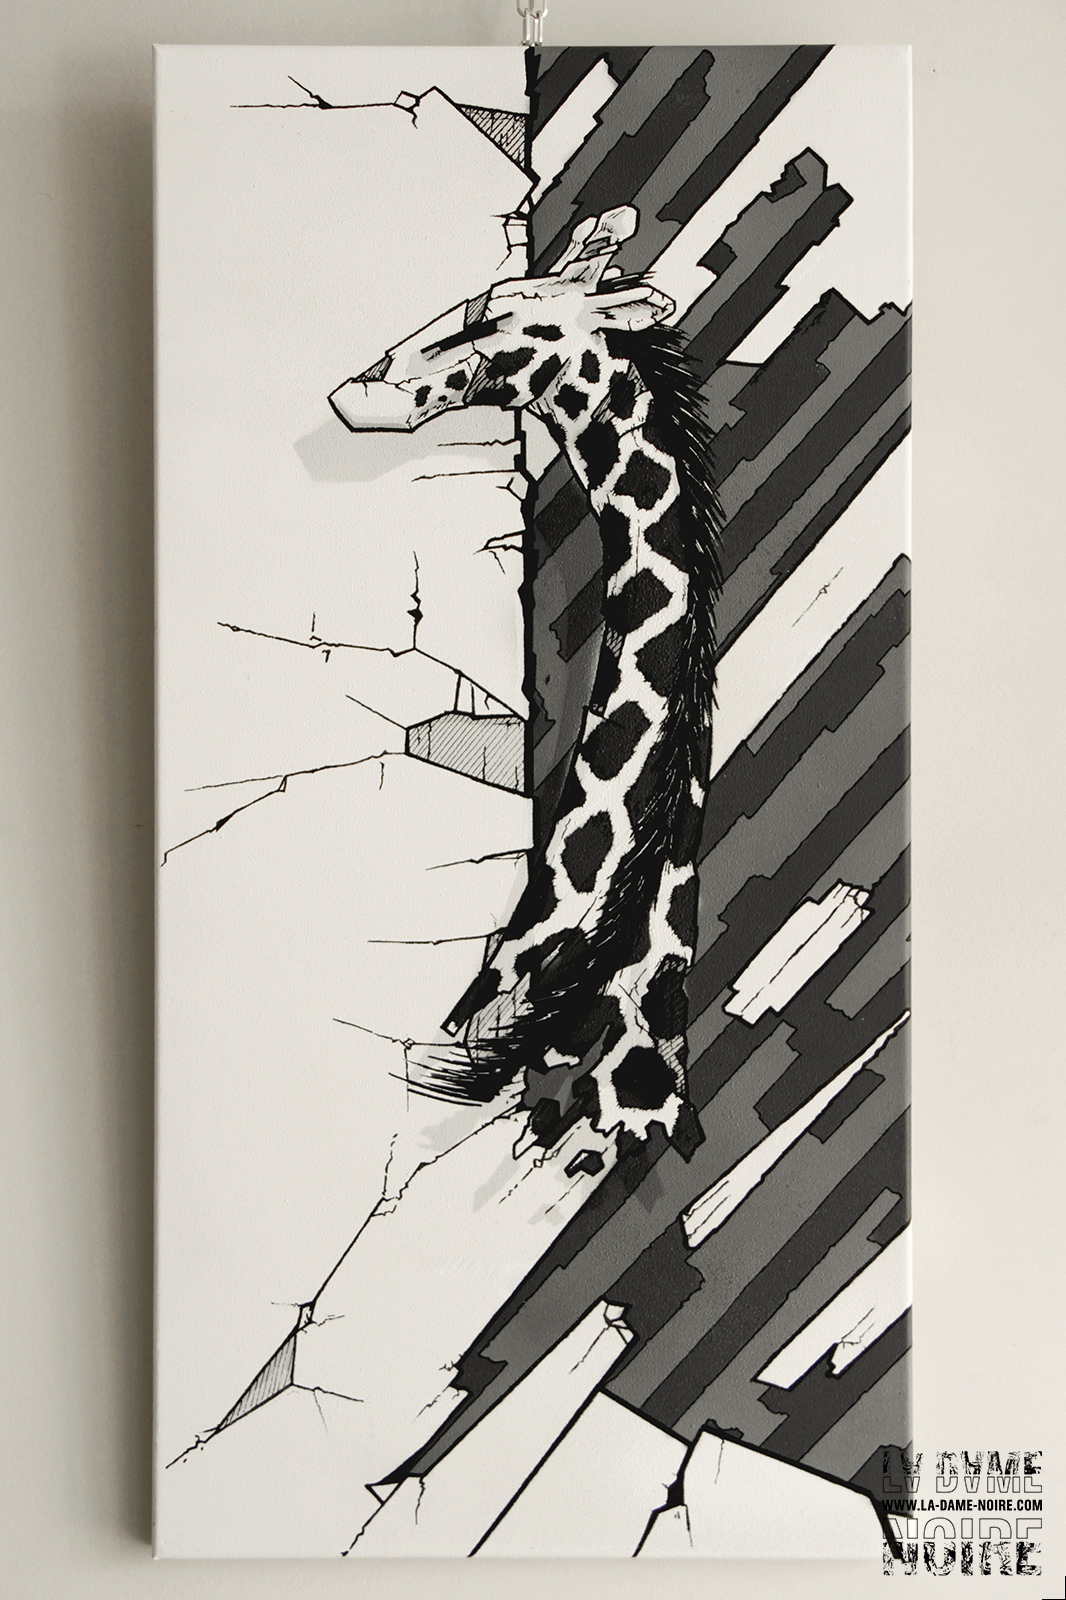 Painting of a giraffe in shades of grey